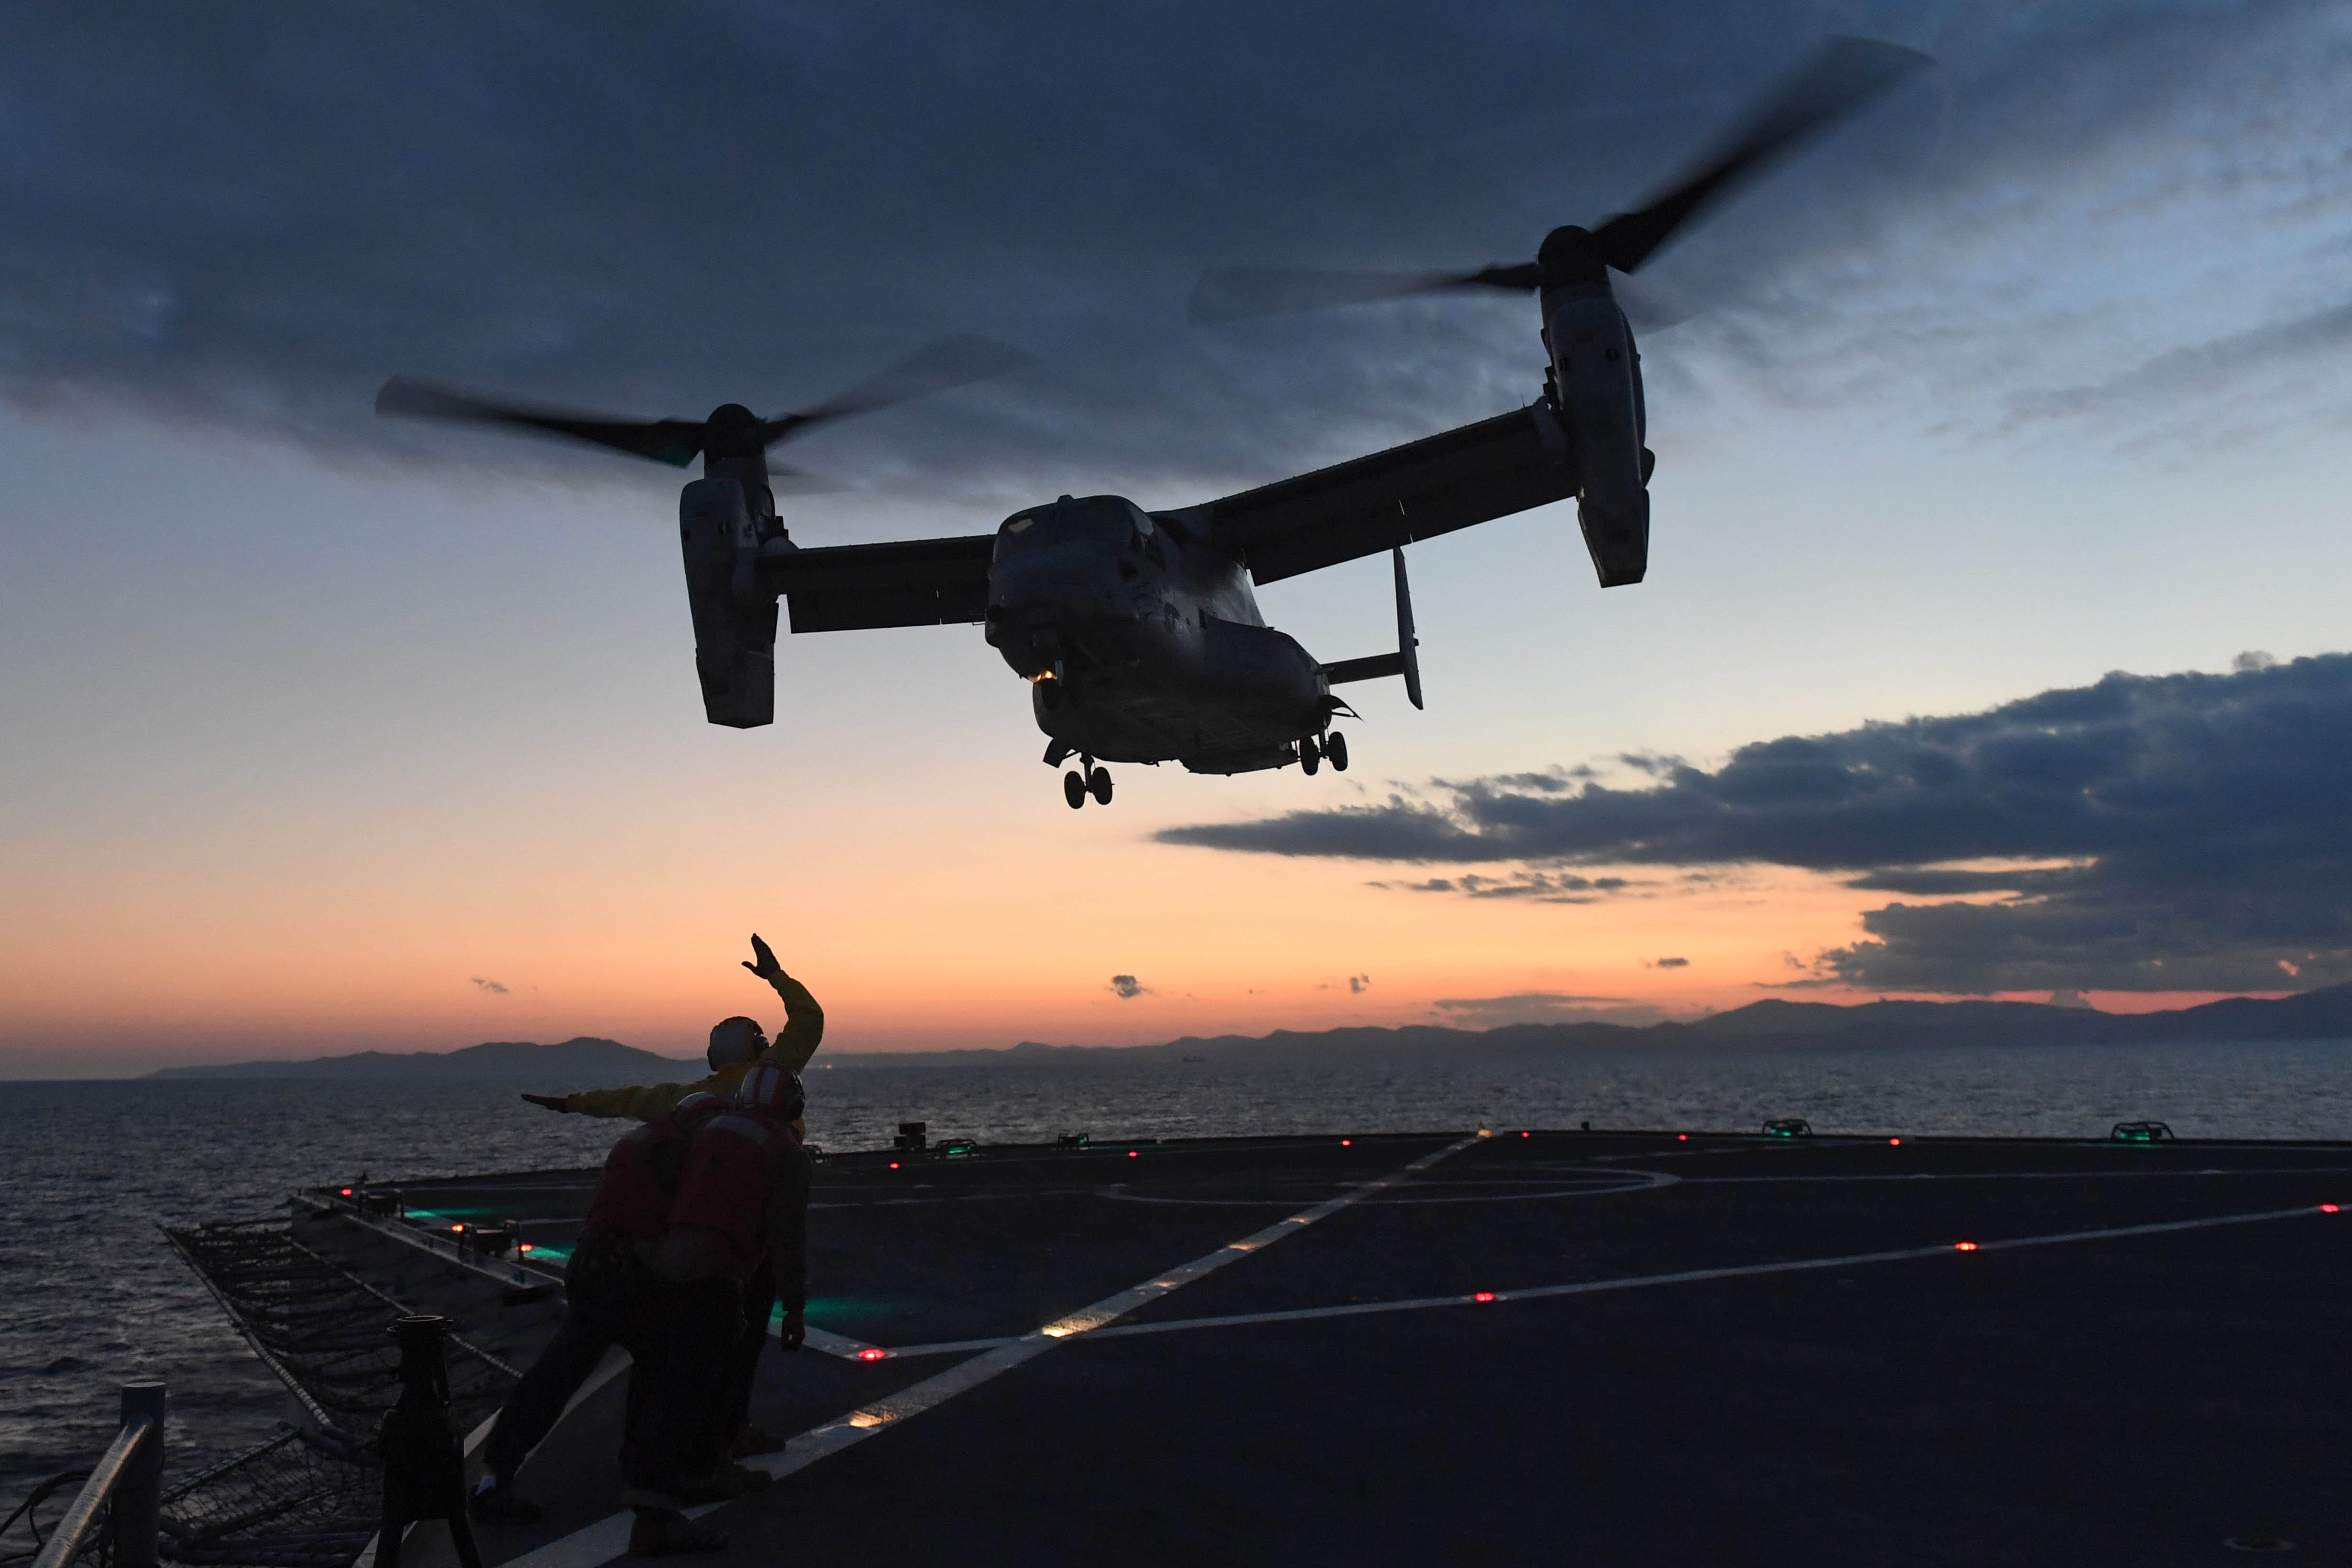 161009-N-JI086-297 - MEDITERRANEAN SEA (Oct. 9, 2016) Military Sealift Command sailors standby during a refueling of an MV-22B Osprey tiltrotor aircraft aboard the U.S. 6th Fleet command and control ship USS Mount Whitney (LCC 20) Oct. 9, 2016. Mount Whitney is underway conducting naval operations in the U.S. 6th Fleet area of operations to engage with key allies and partners in the region. (U.S. Navy photo by Seaman Ford Williams / Released)